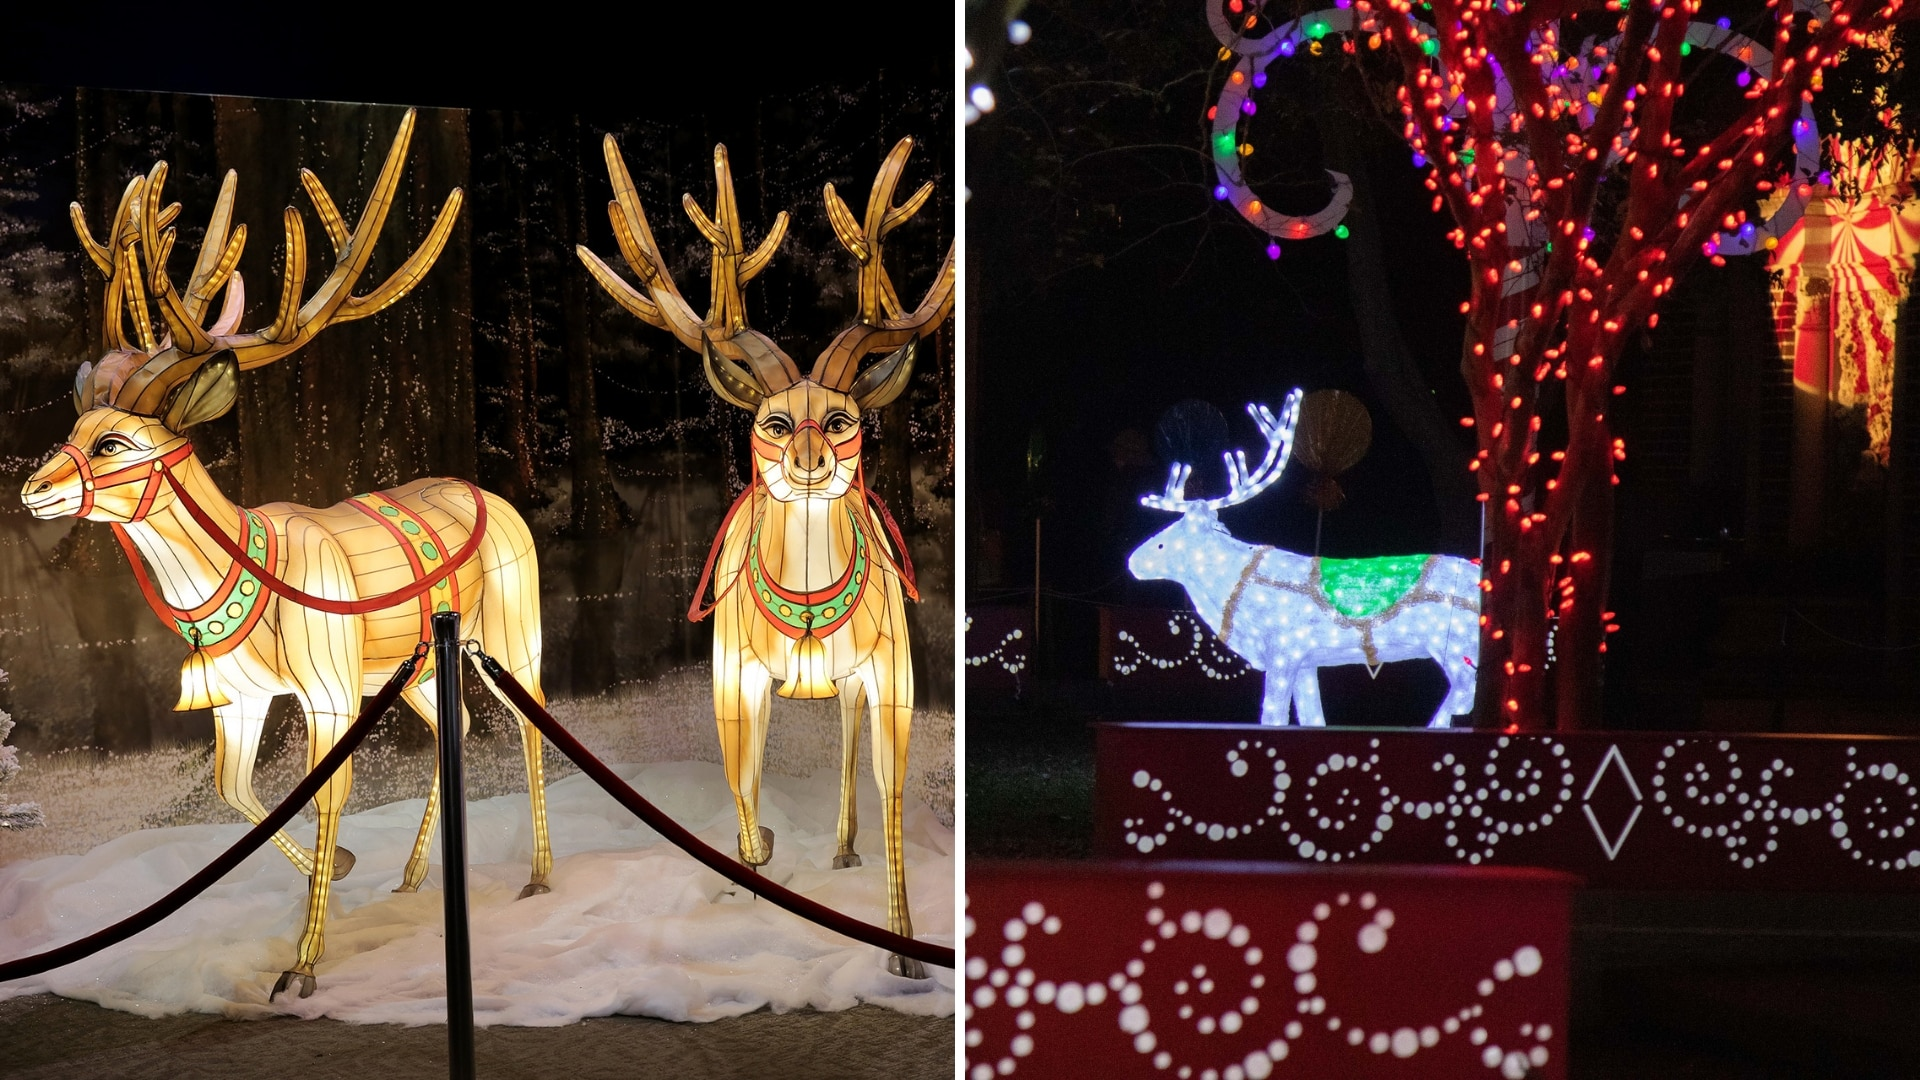 Reindeer lights at Audubon Zoo in New Orleans